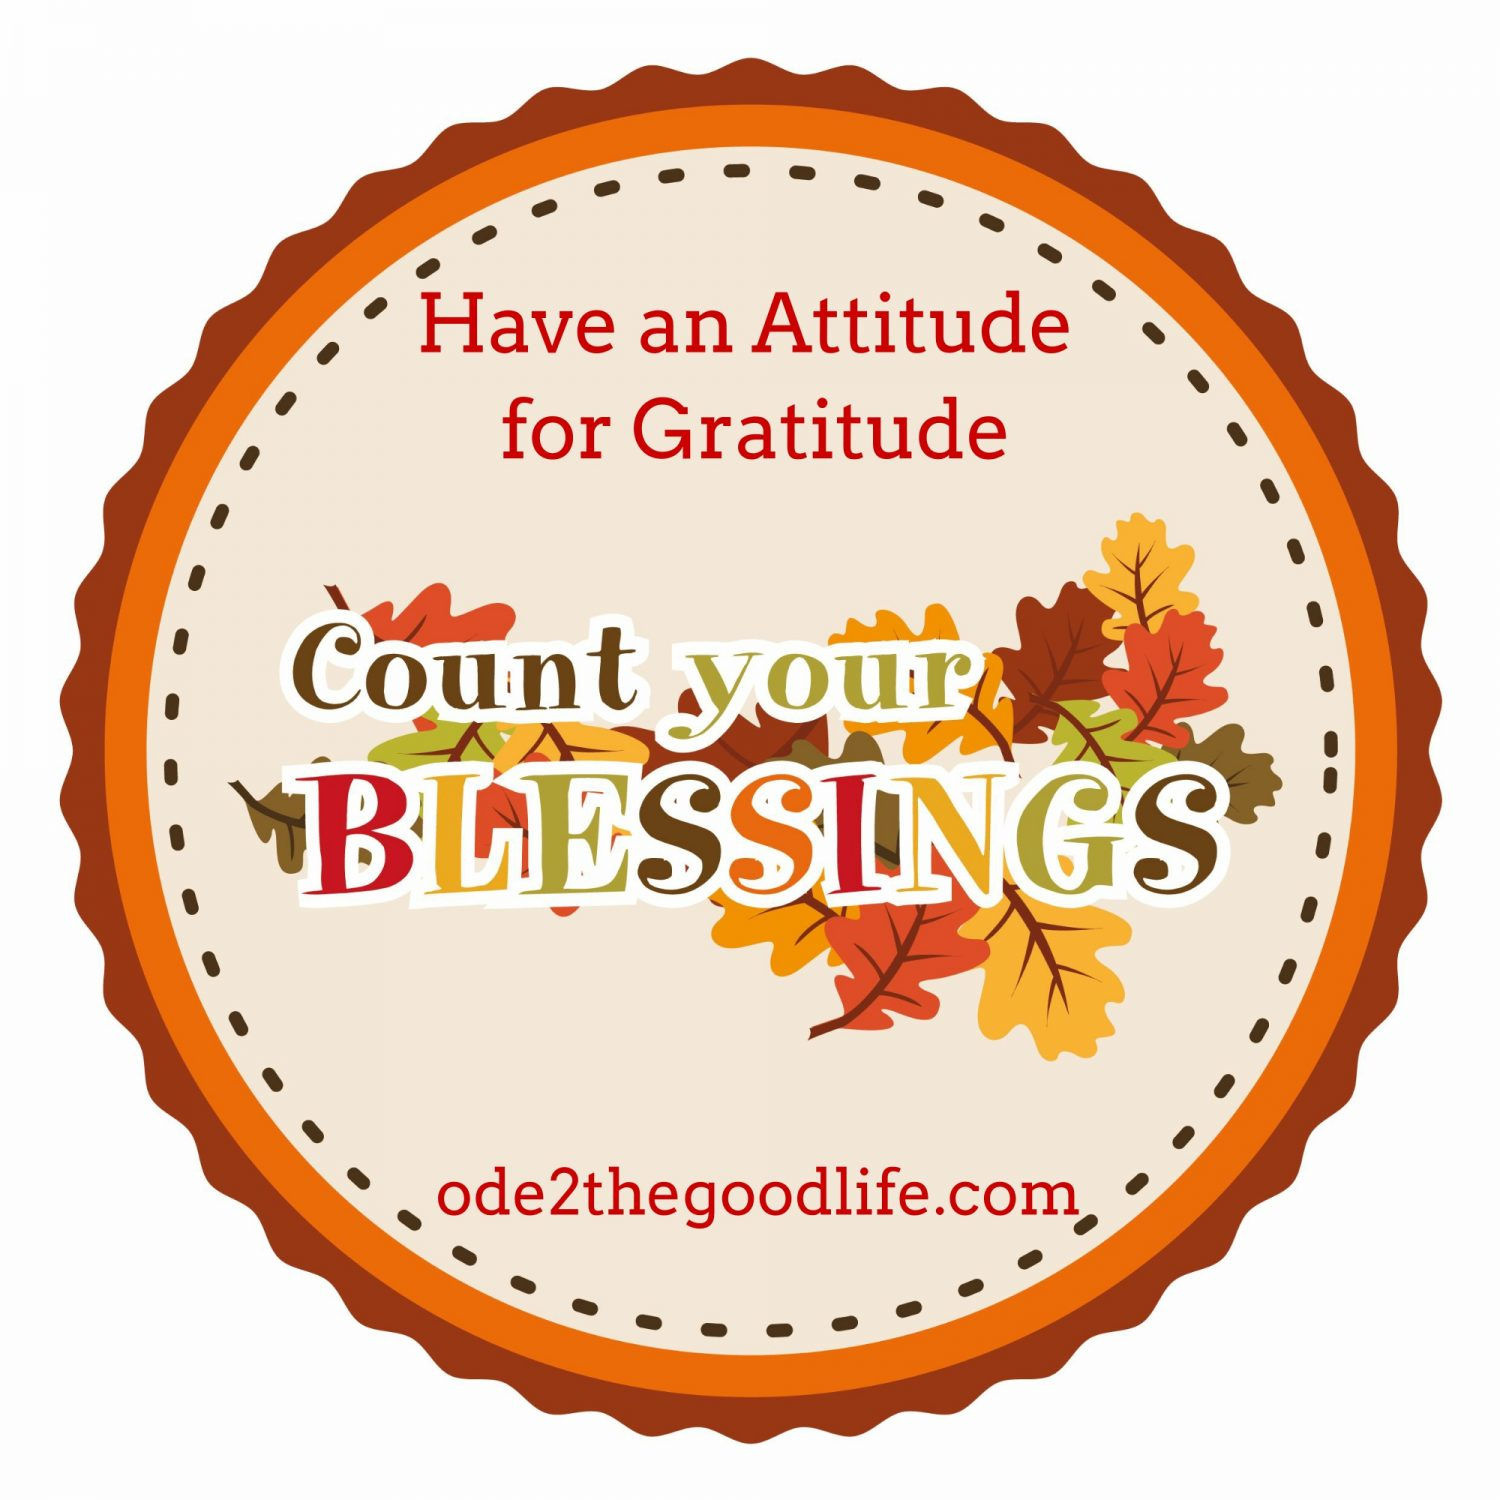 Have an Attitude for Gratitude